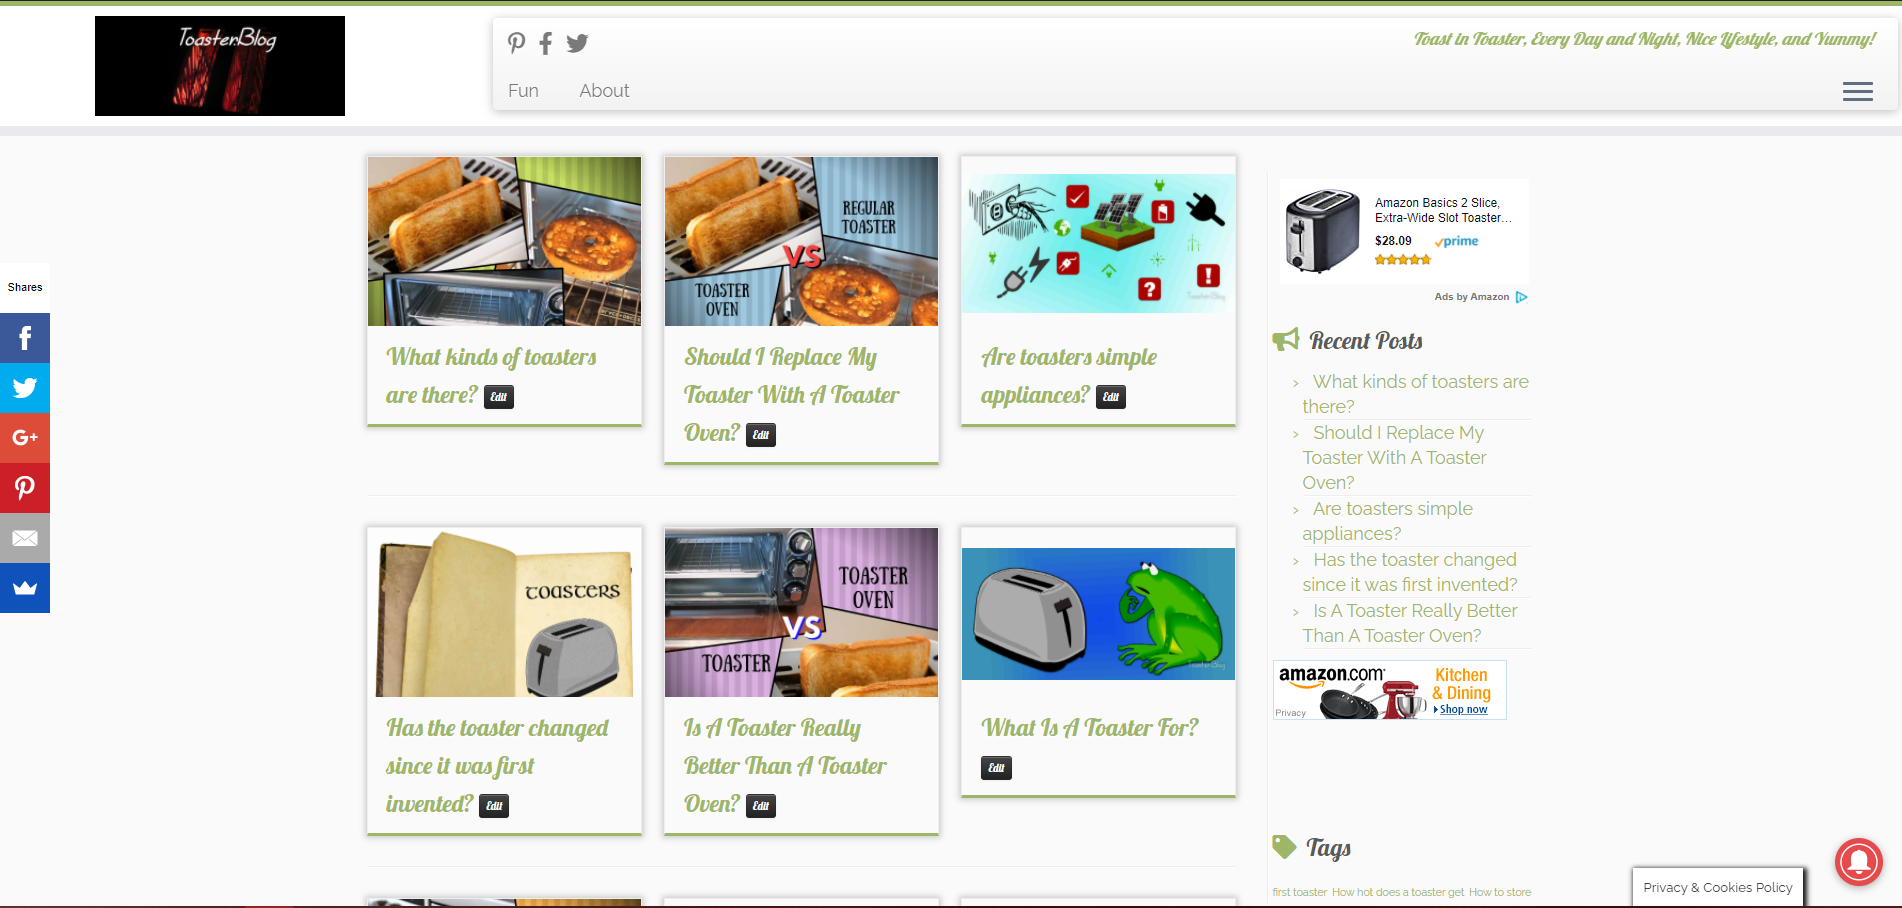 Toaster.Blog - Toast in Toaster, Every Day and Night, Nice Lifestyle, and Yummy!